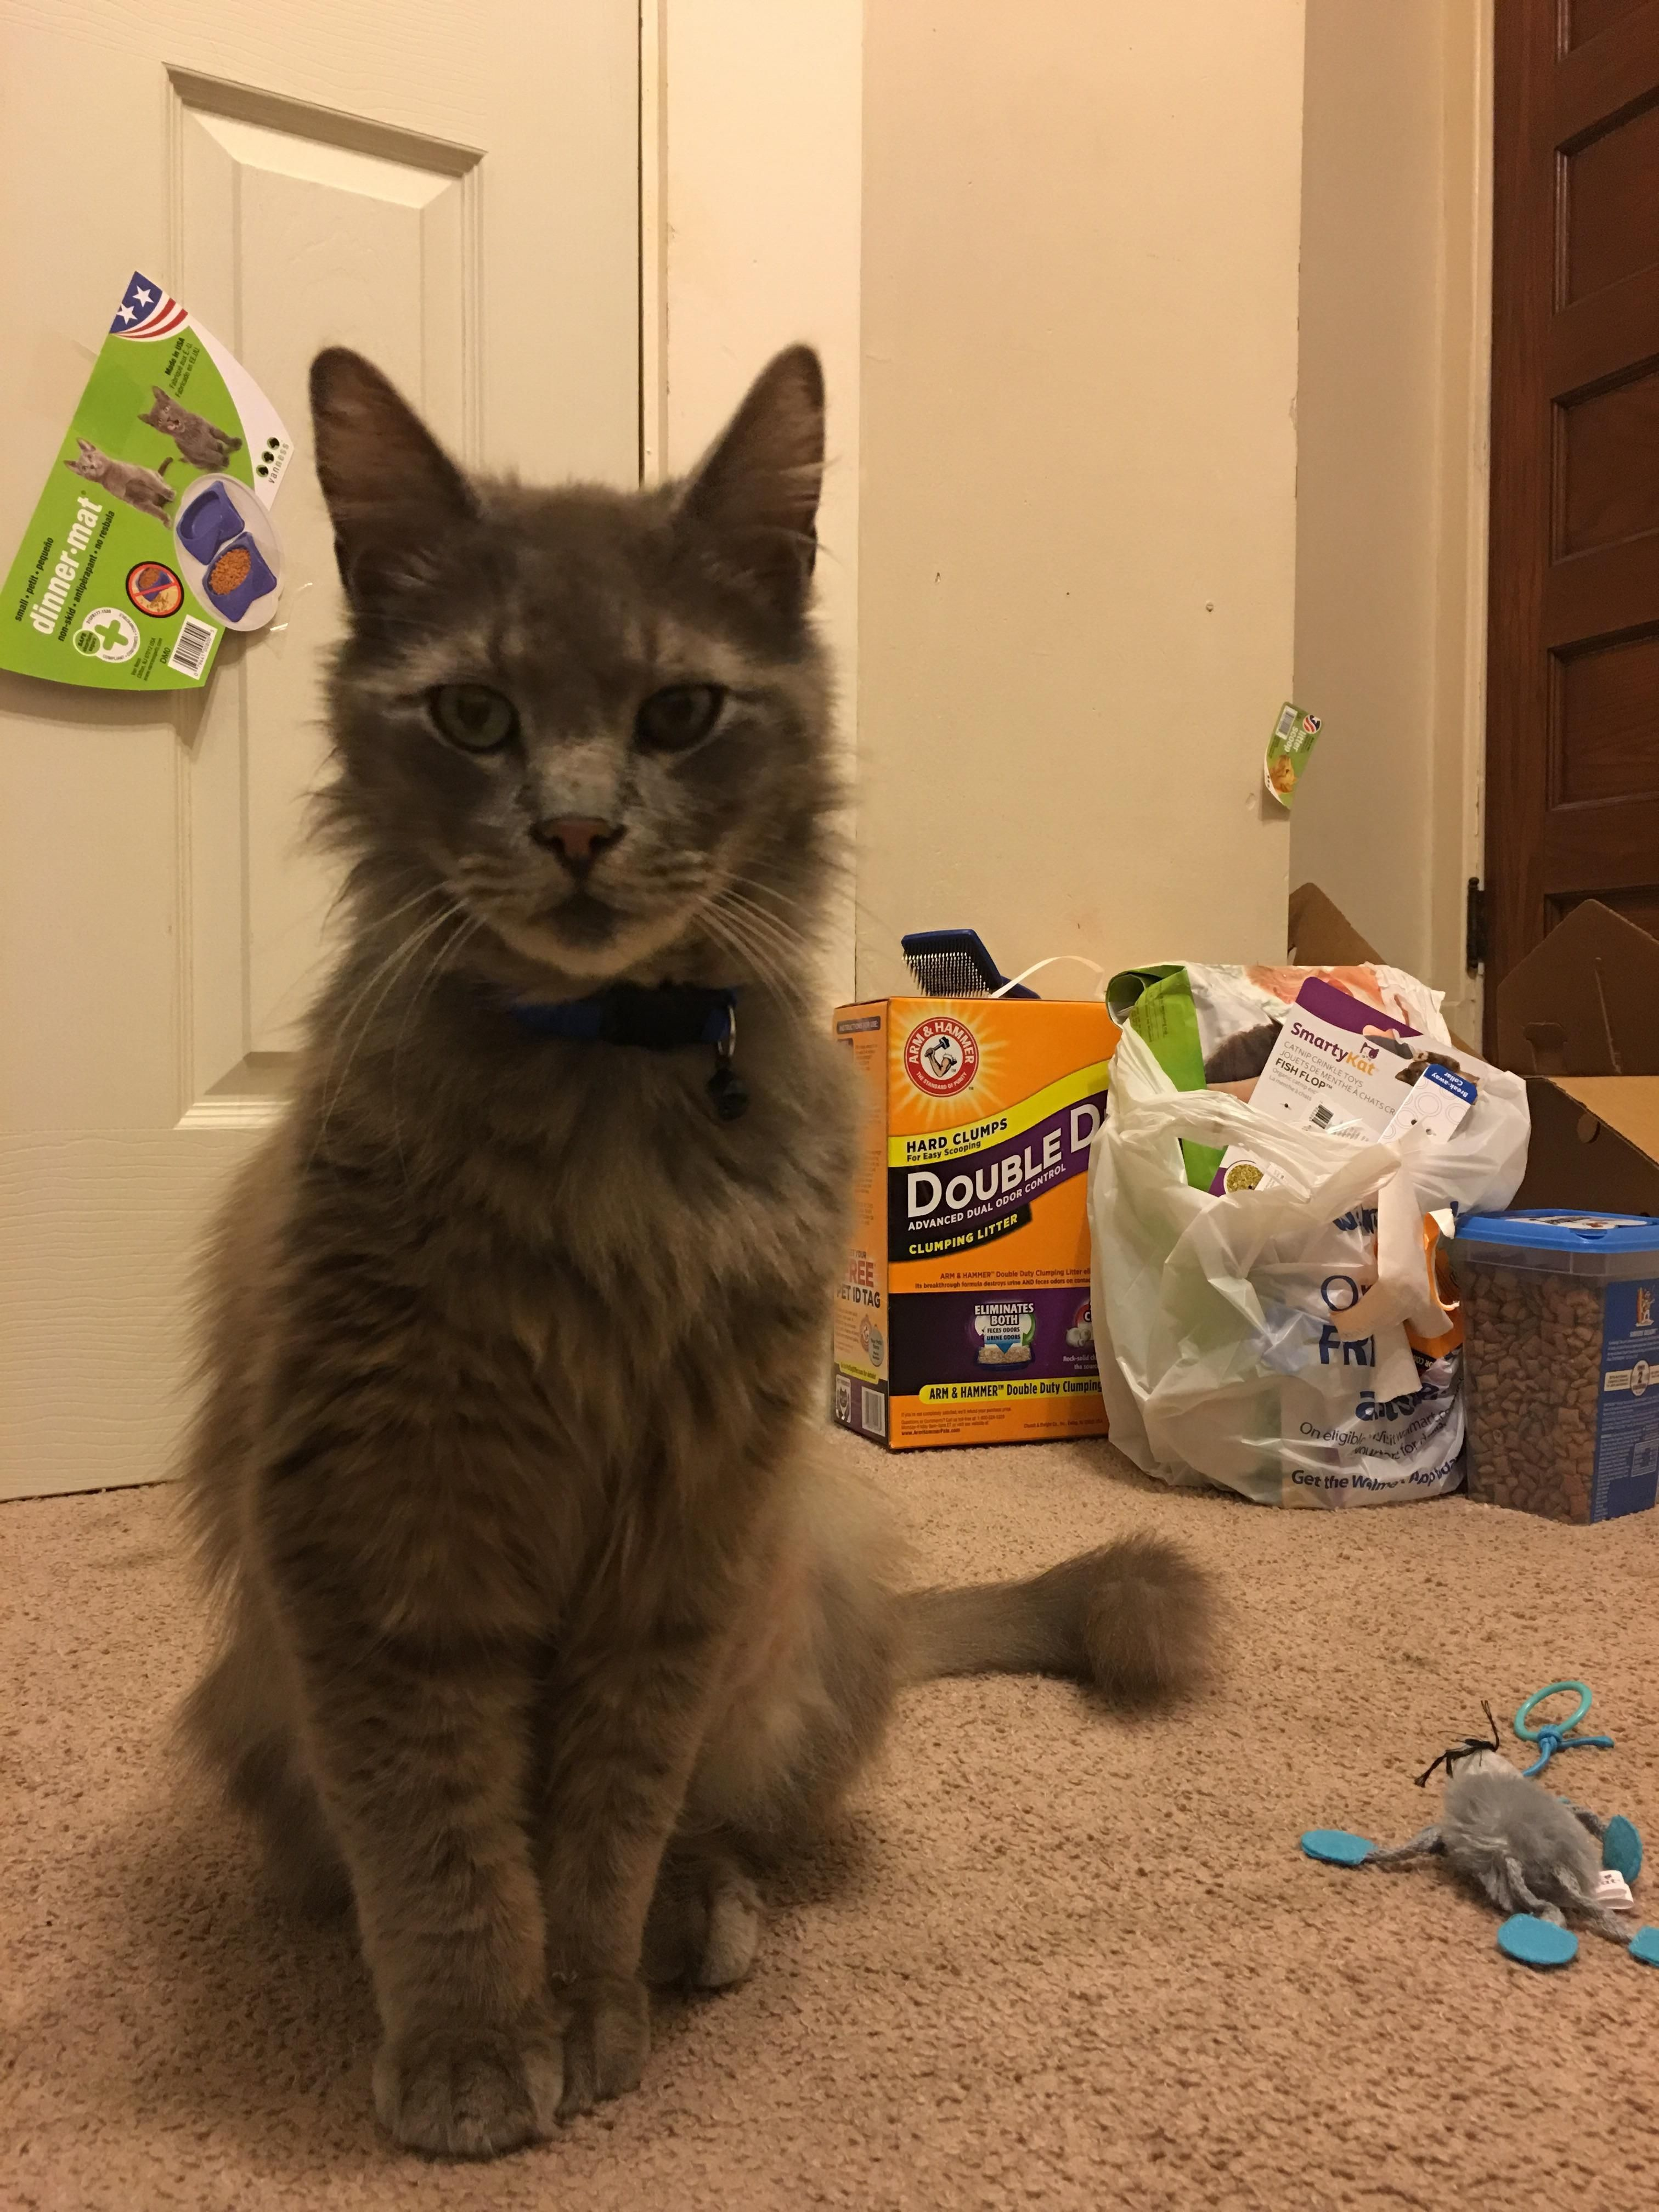 Adopted a cat yesterday. Meet Smokey!